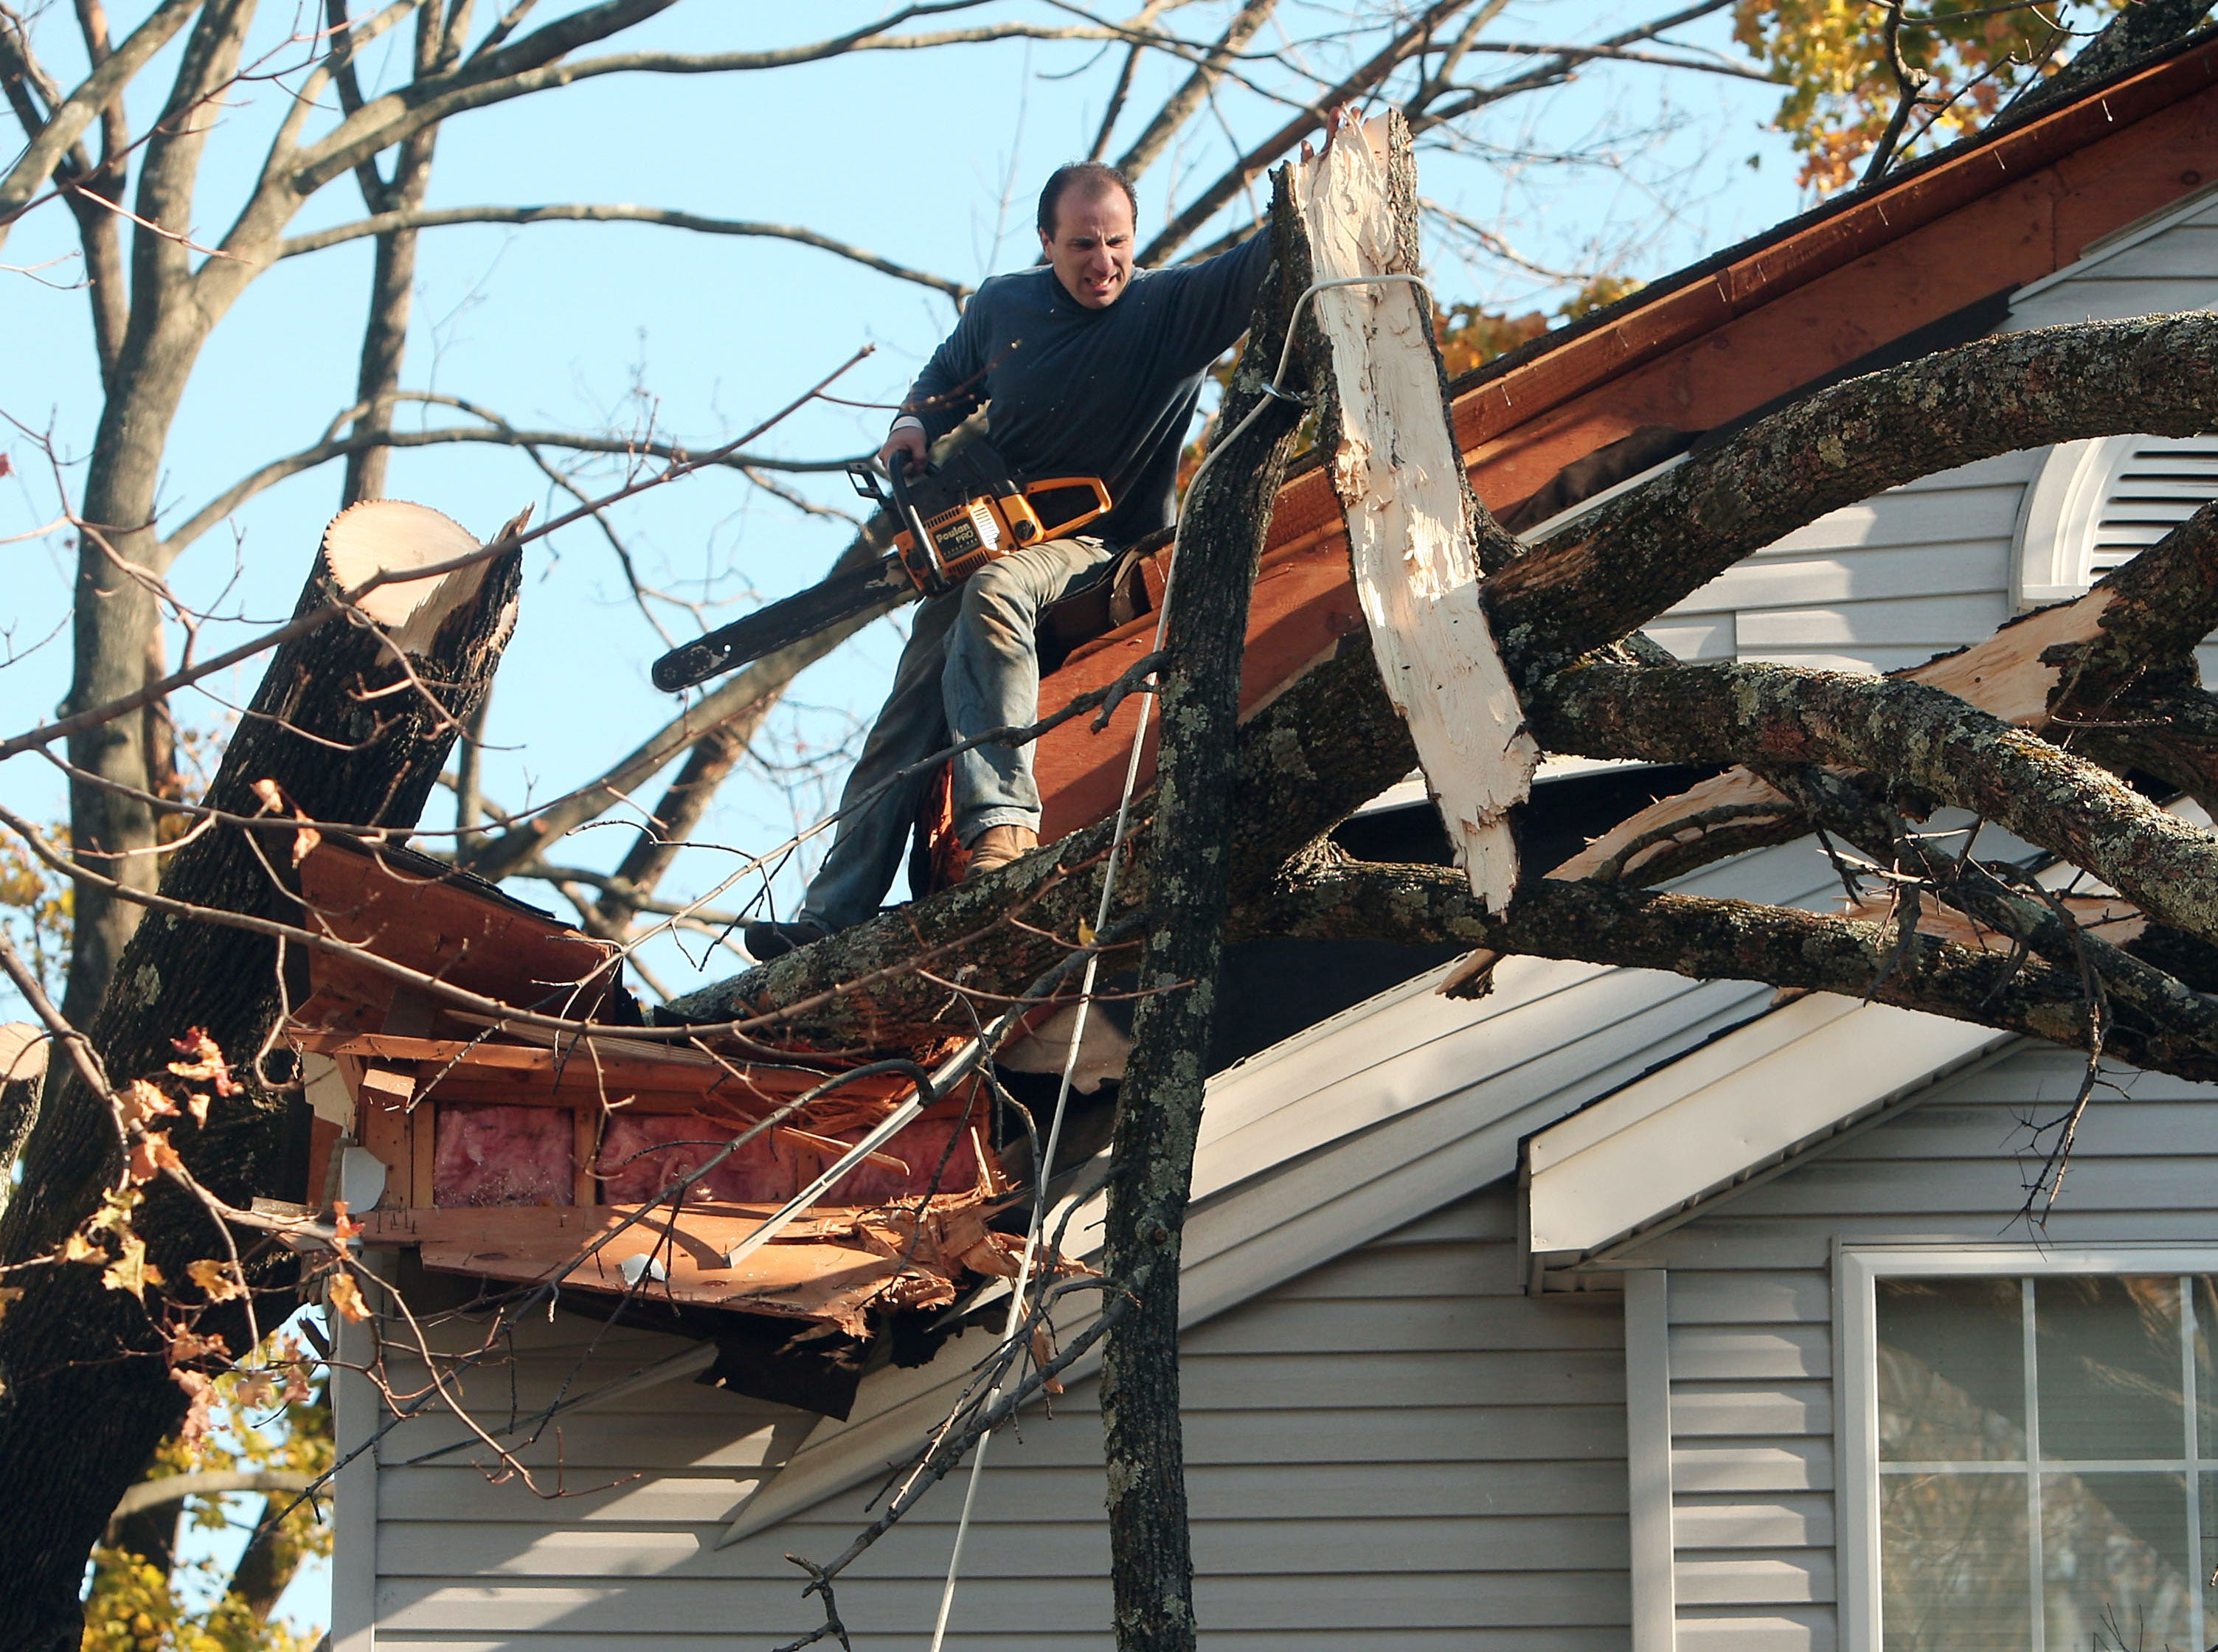 Morristown, N.J.- November 5, 2012--Joe Esposito of HLM Designs in Randolph, NJ take down a large tree that destroyed part of a Morristown homeowners roof during Hurricane Sandy.Bob Karp/Staff Photographer/DAILY RECORD